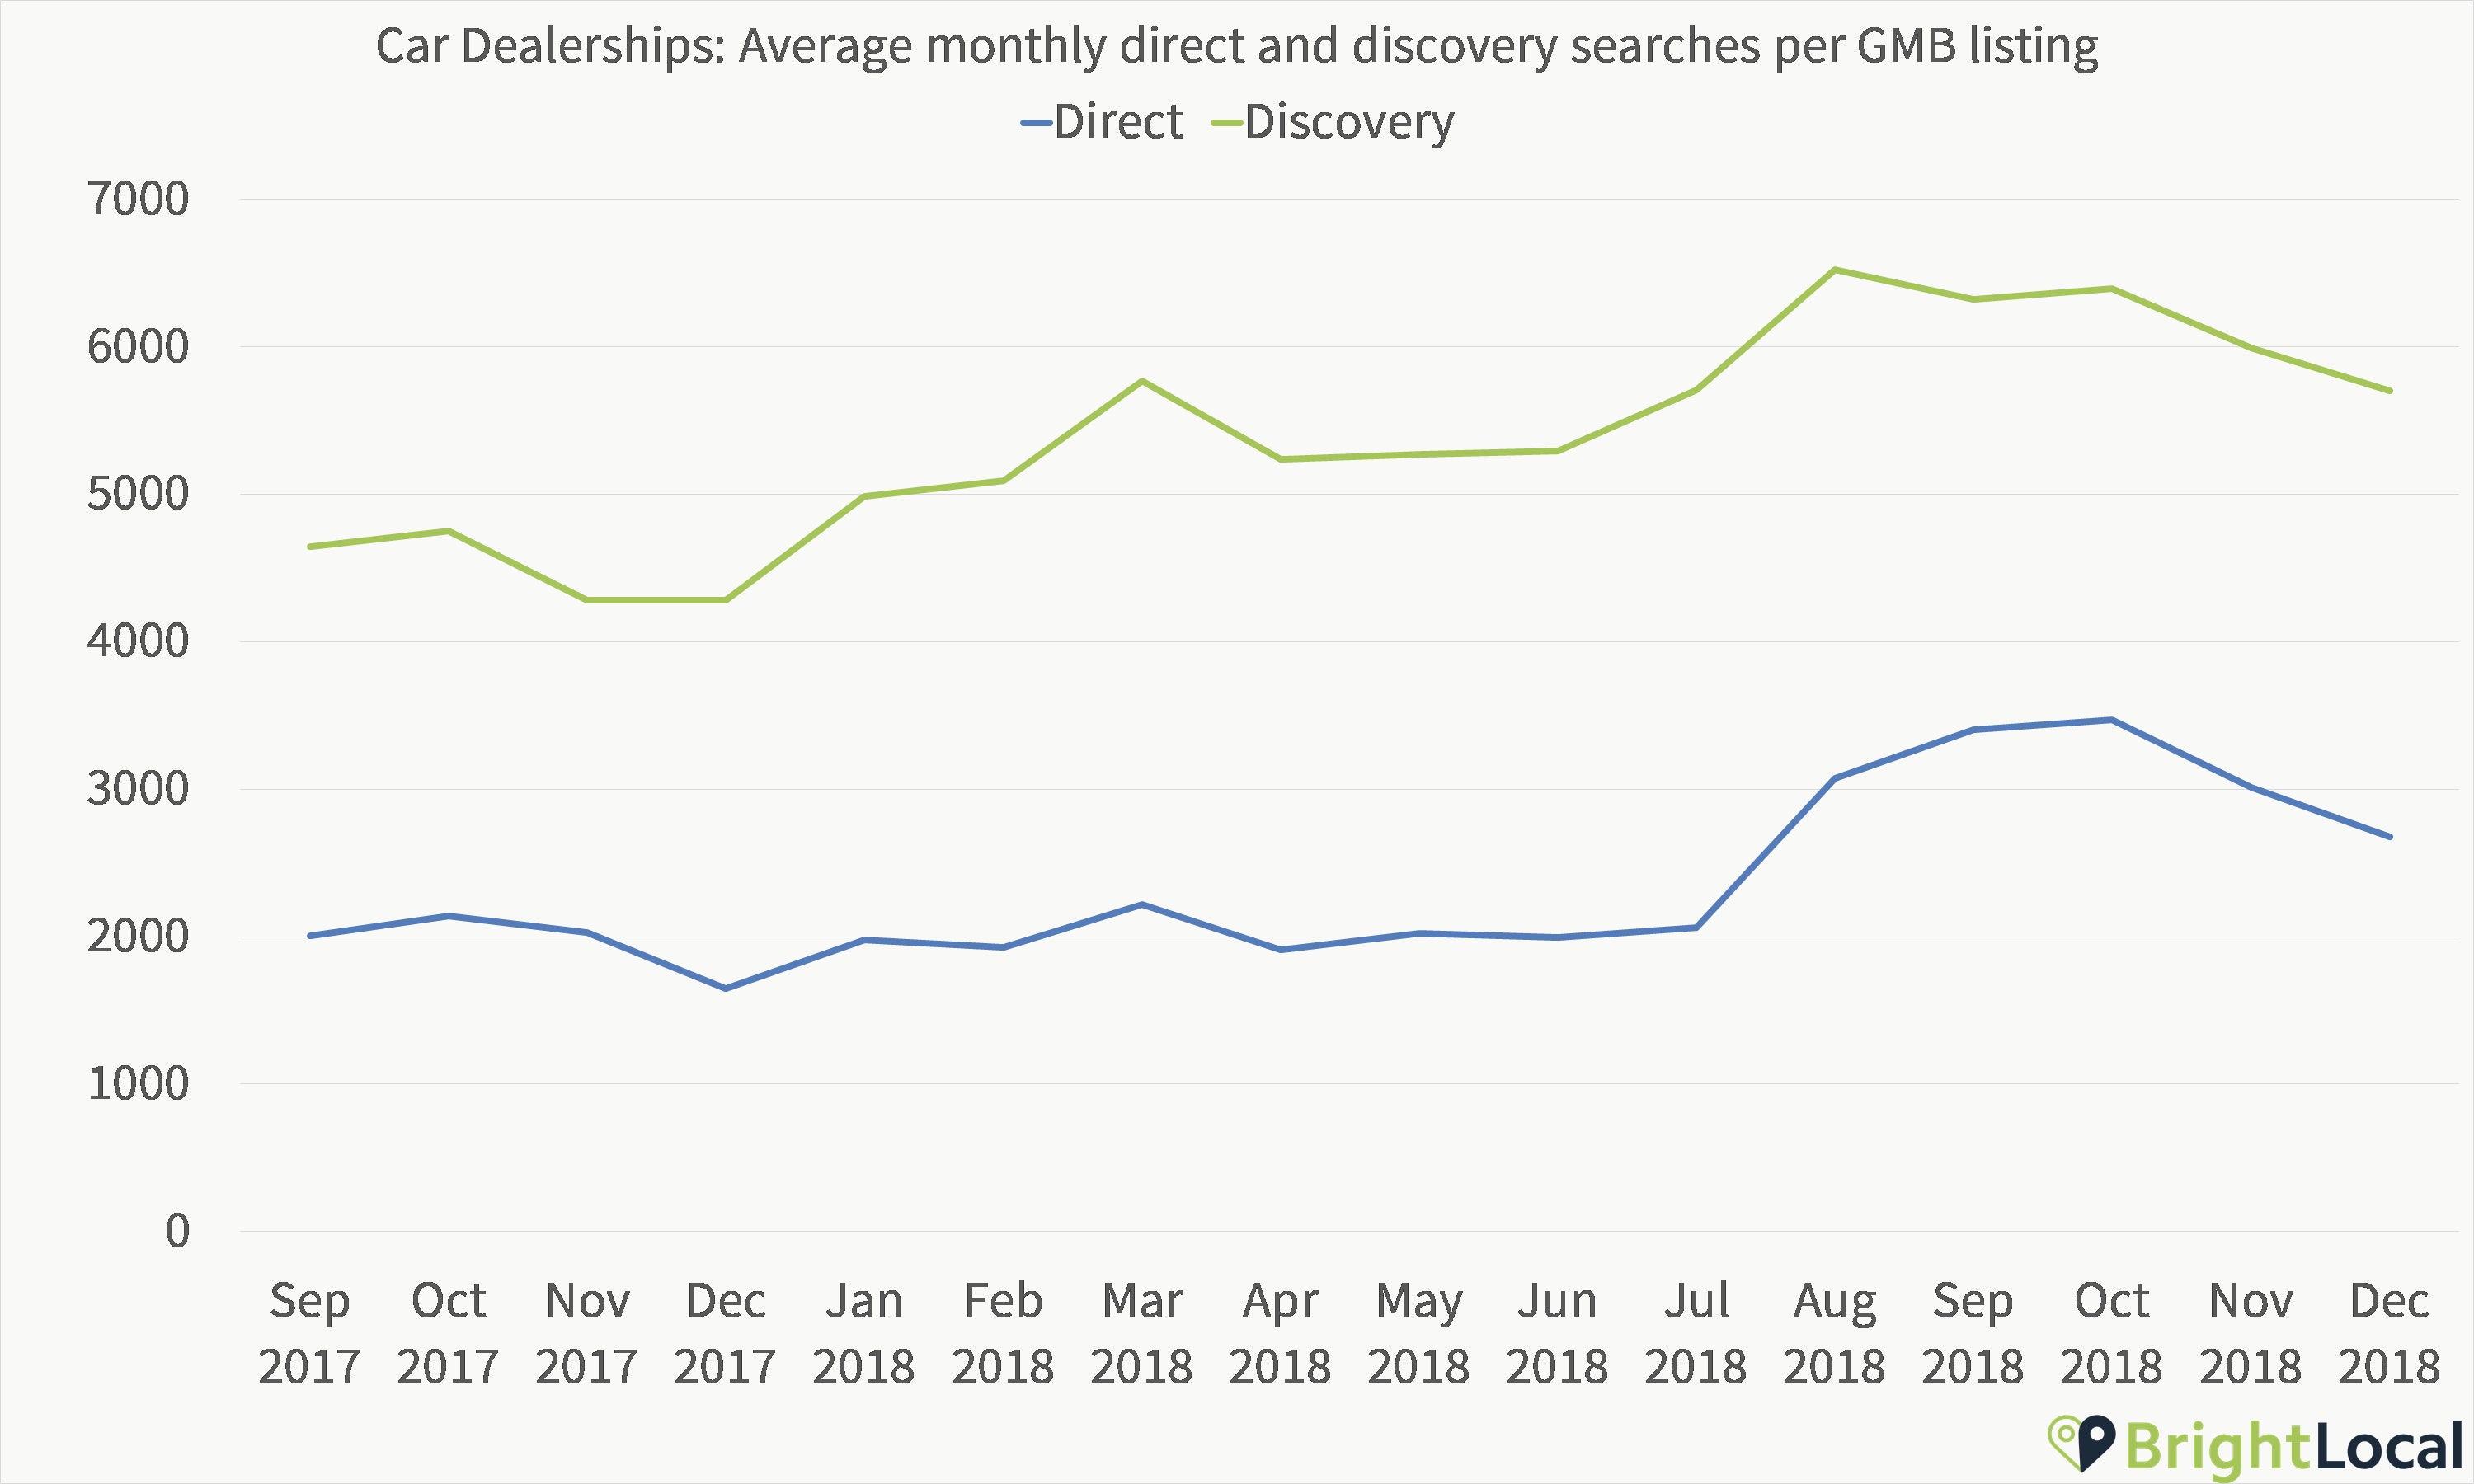 Car Dealerships direct and discovery searches over time